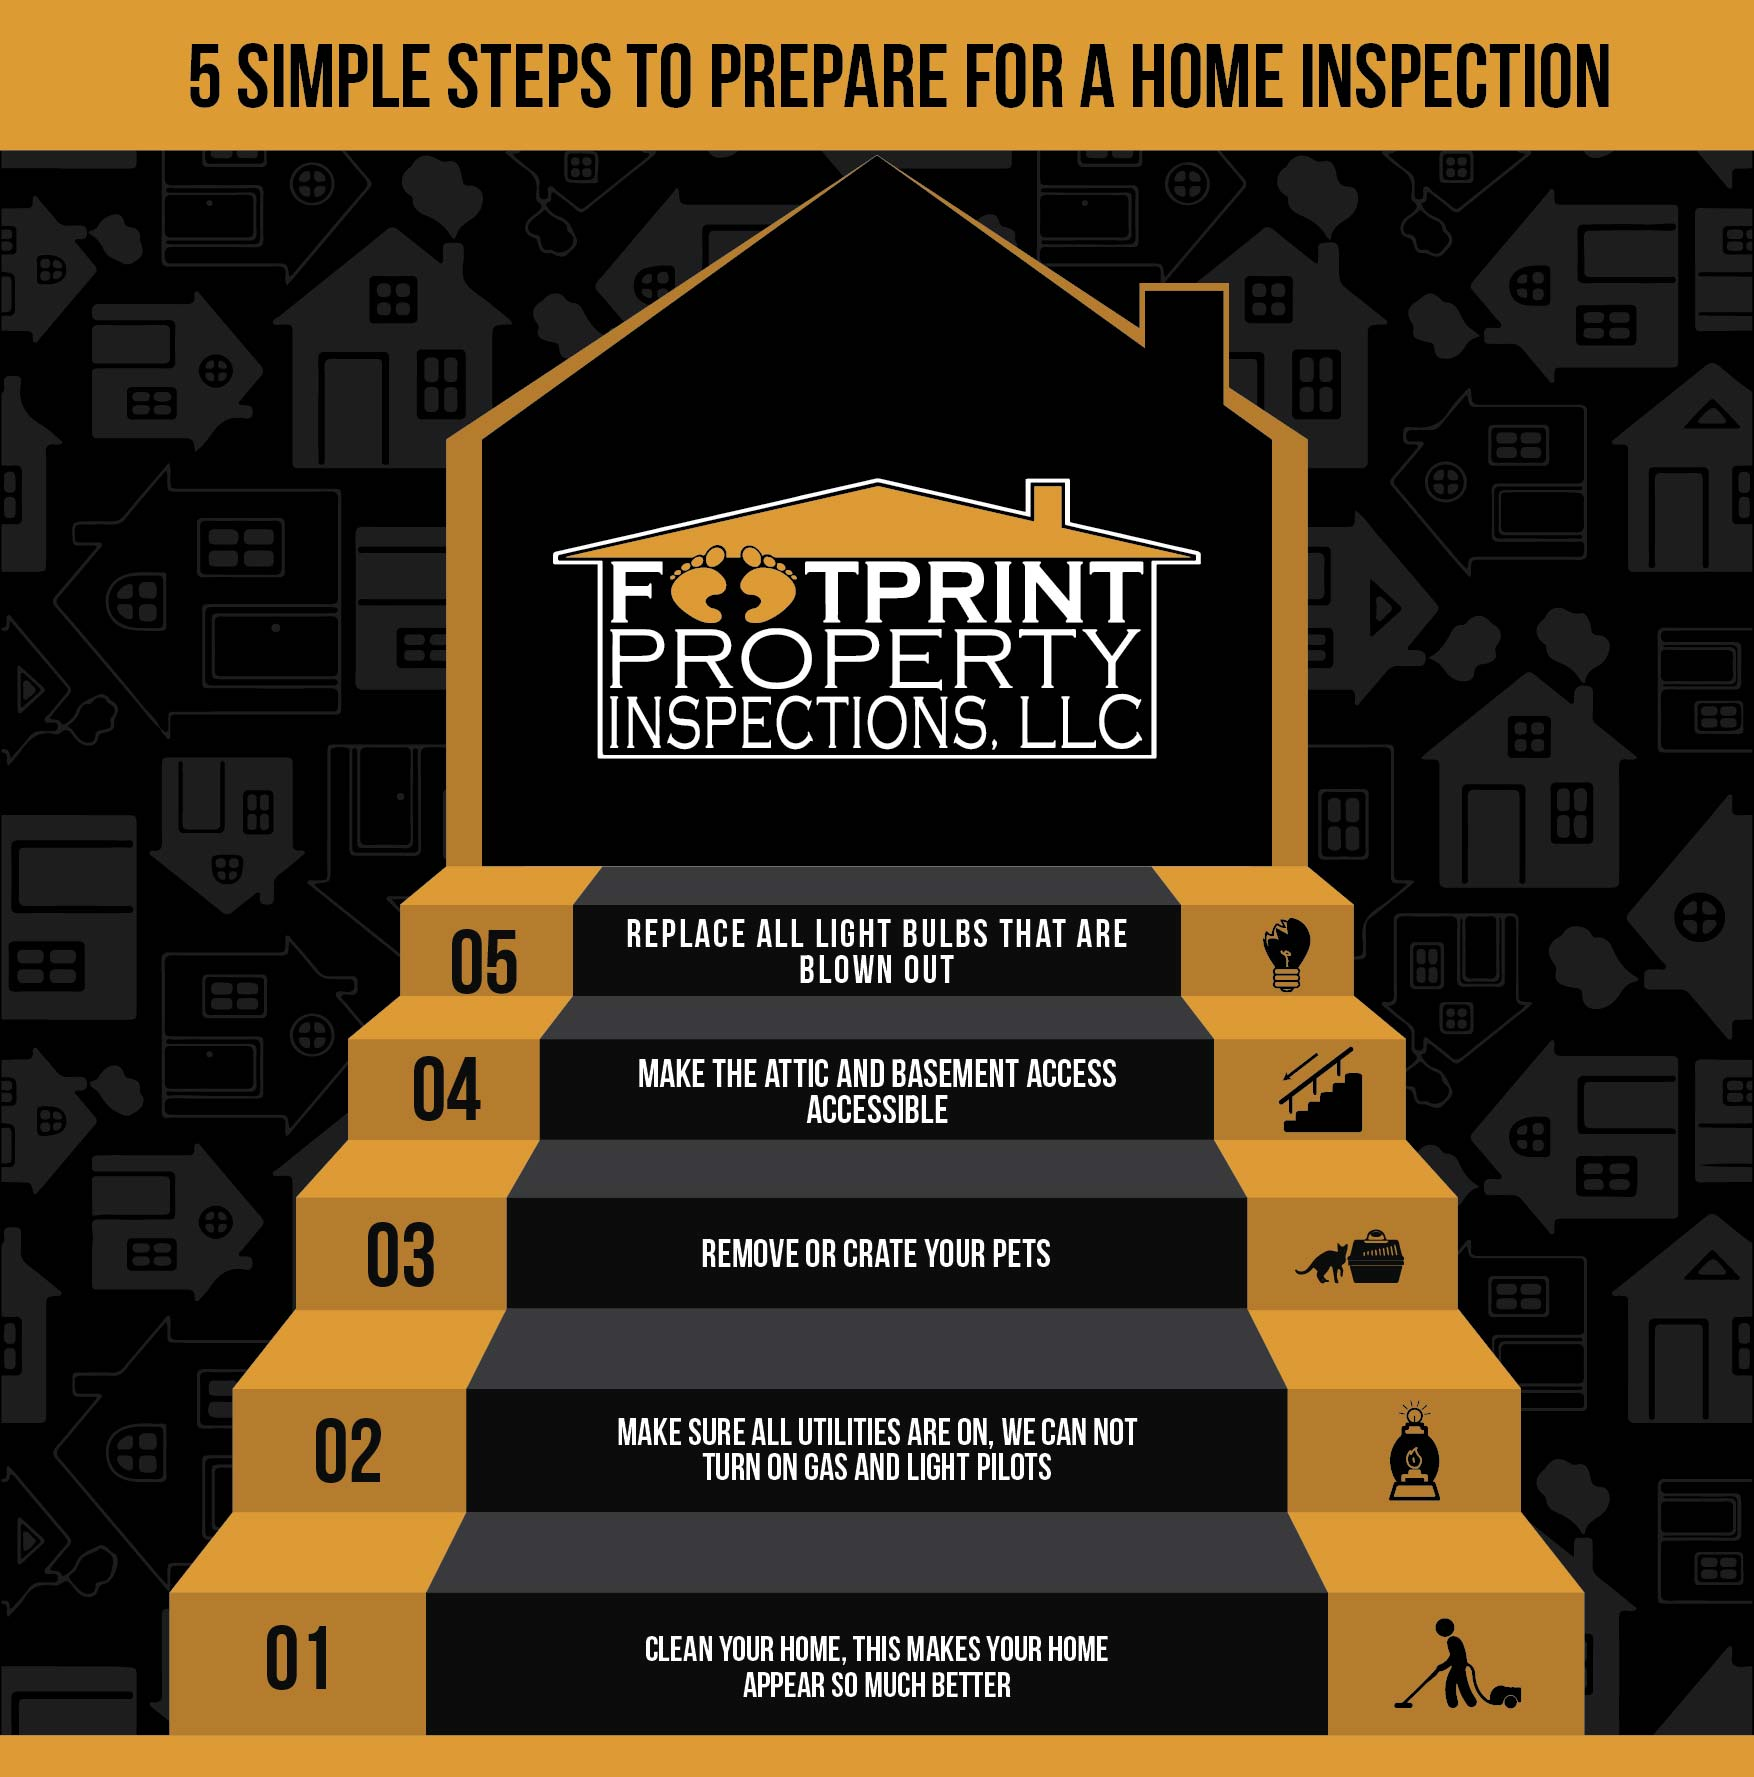 5 Steps to prepare your home for a home inspection.